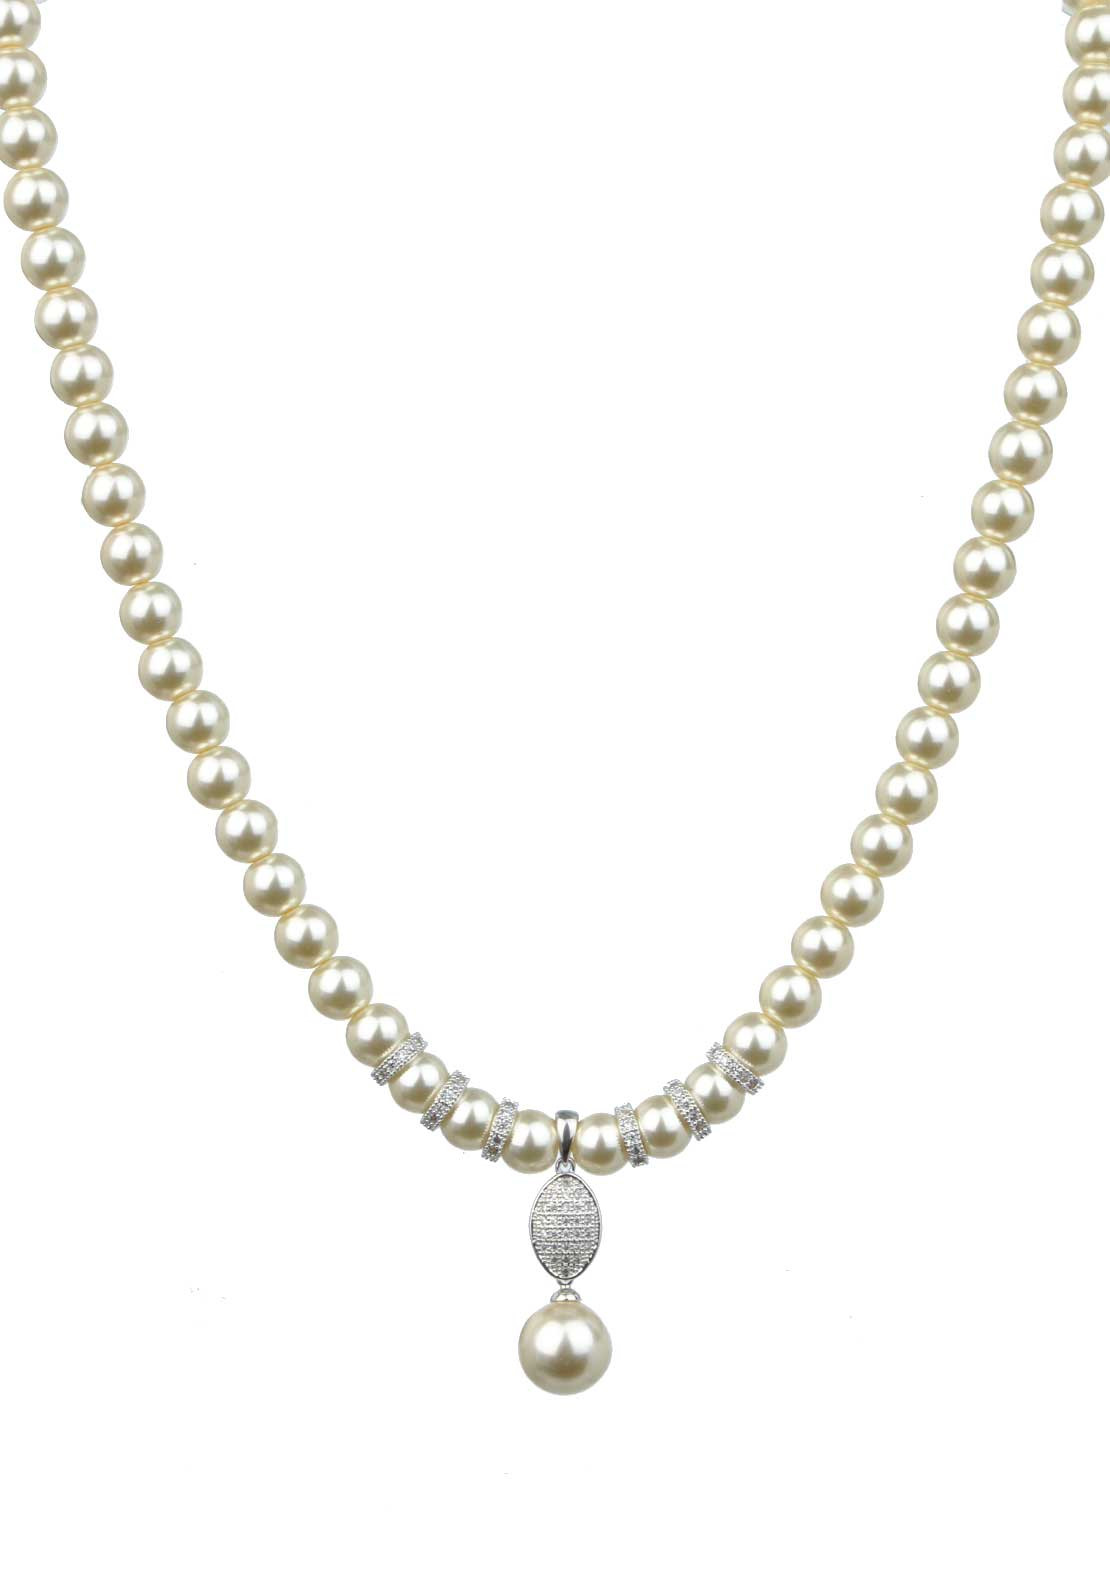 Absolute Jewellery Pearl Necklace with Pave Set Pearl Drop, Pearl